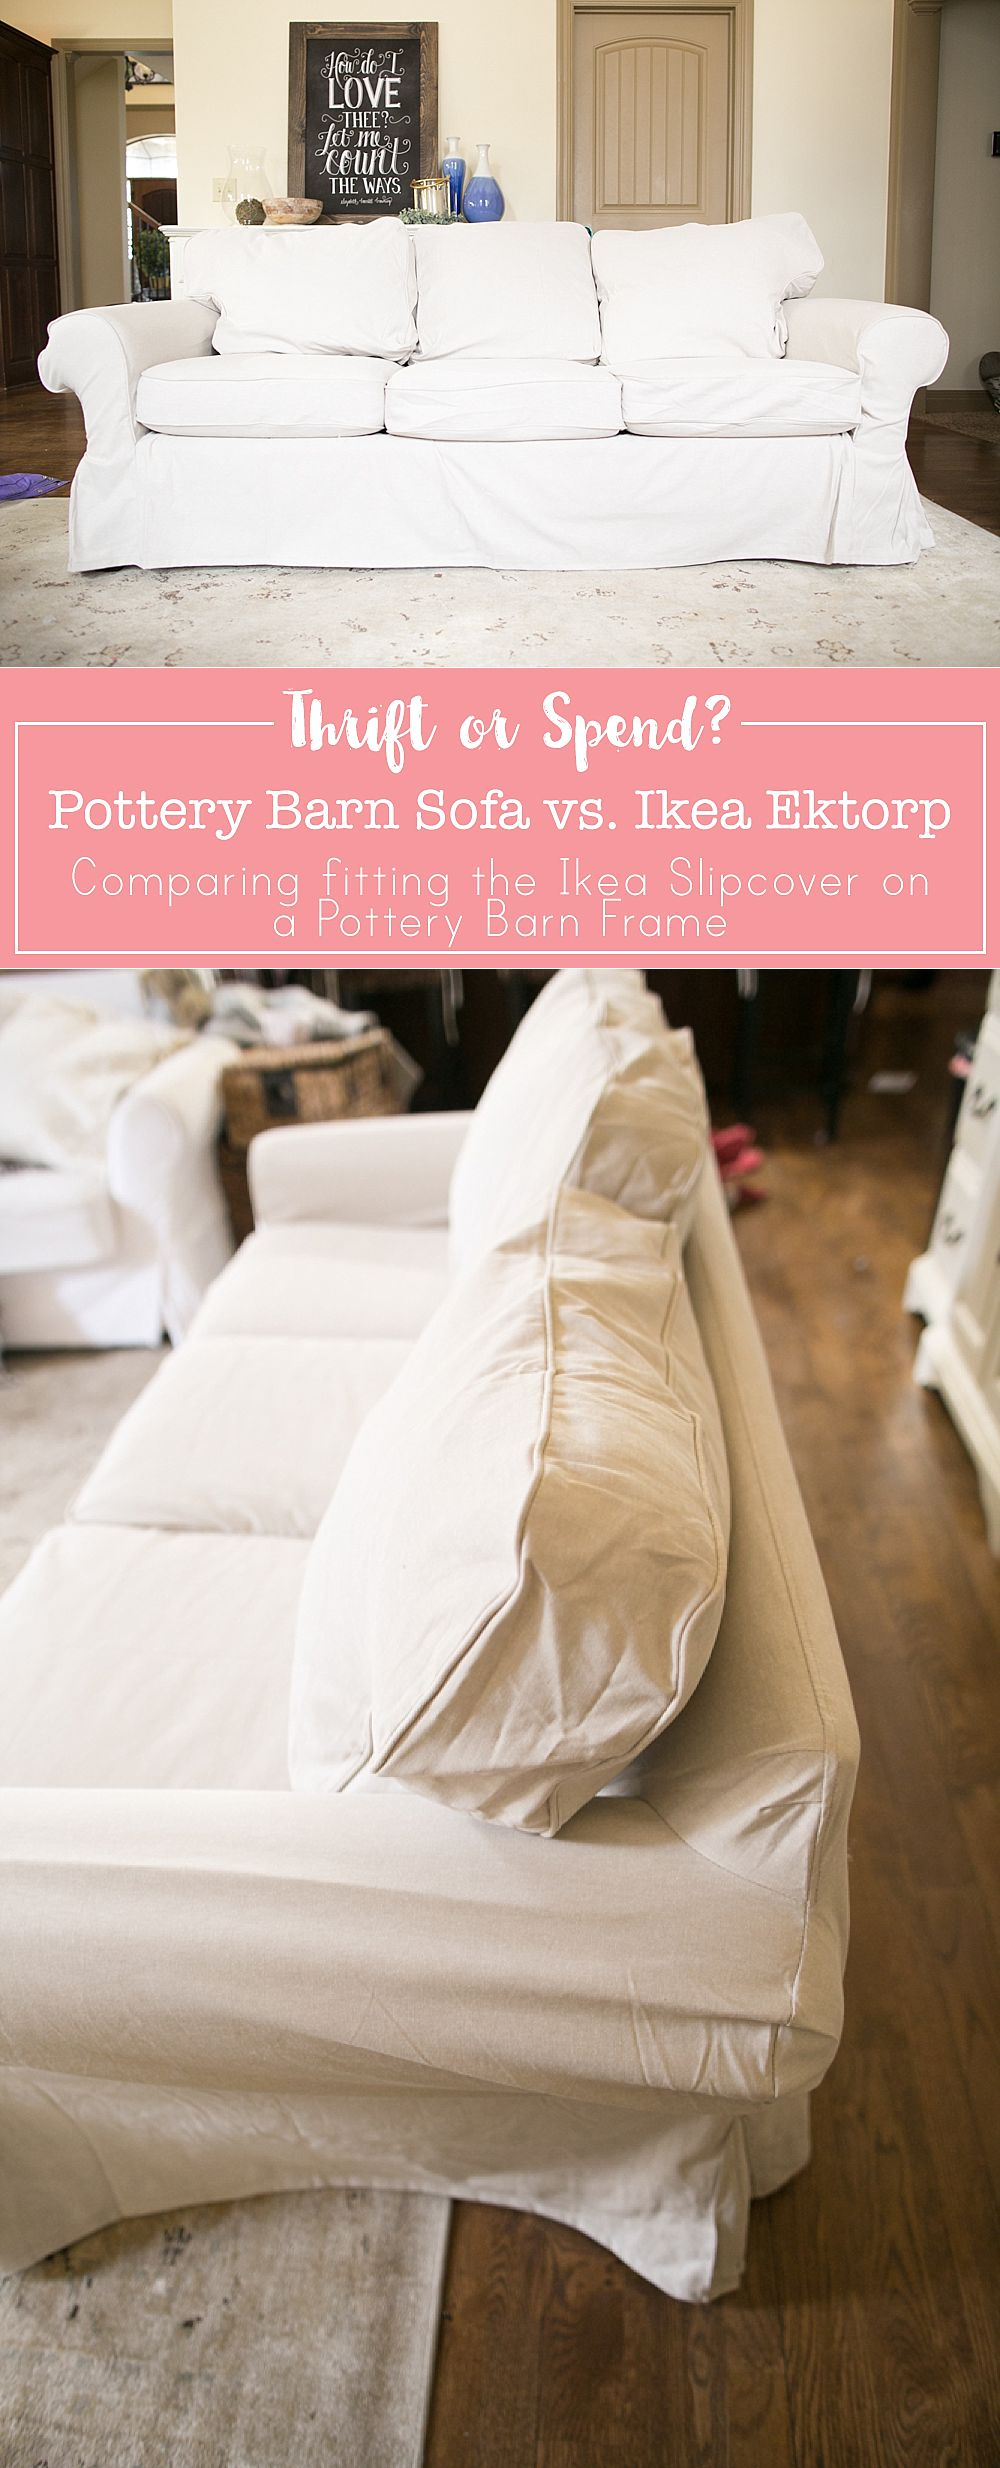 Ektorp Sofa Cover on a Pottery Barn Basic Sofa featured by top US lifestyle blogger, Sengerson: ikea slipcovers for non ikea furniture - save money not having to buy Pottery Barn Slipcovers for your sofa